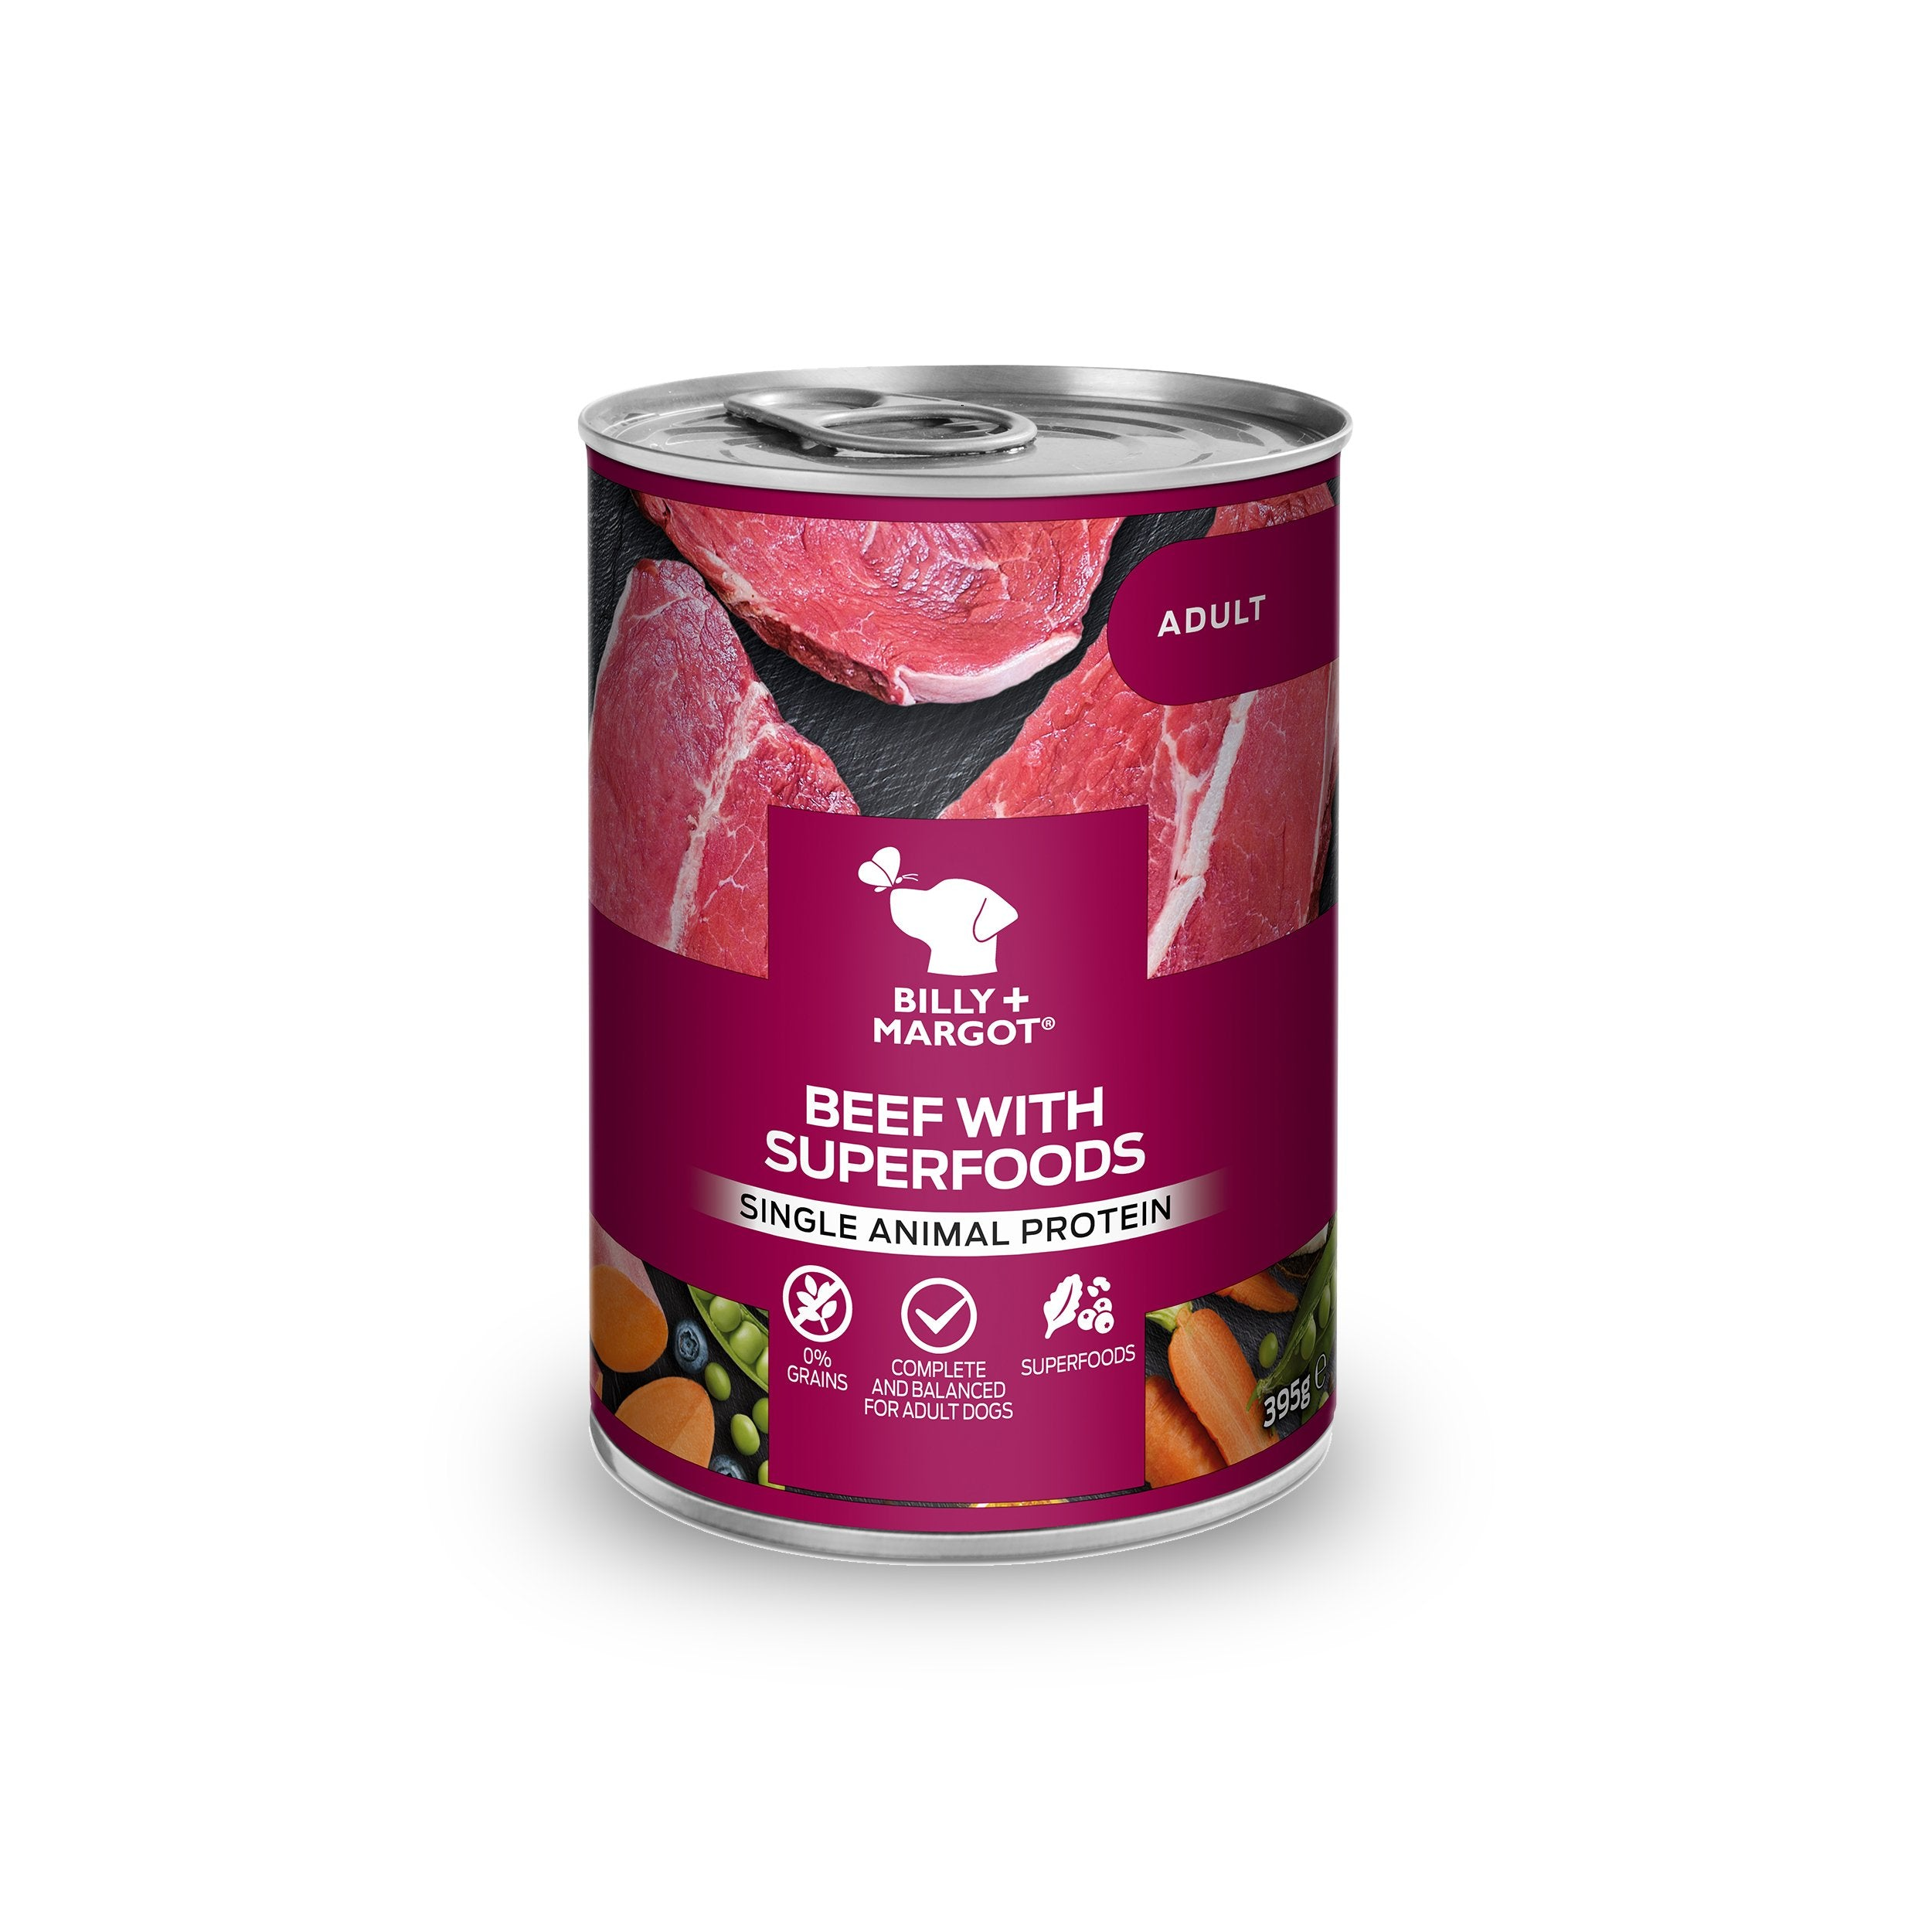 Billy + Margot Beef with Superfoods Canned Wet Dog Food